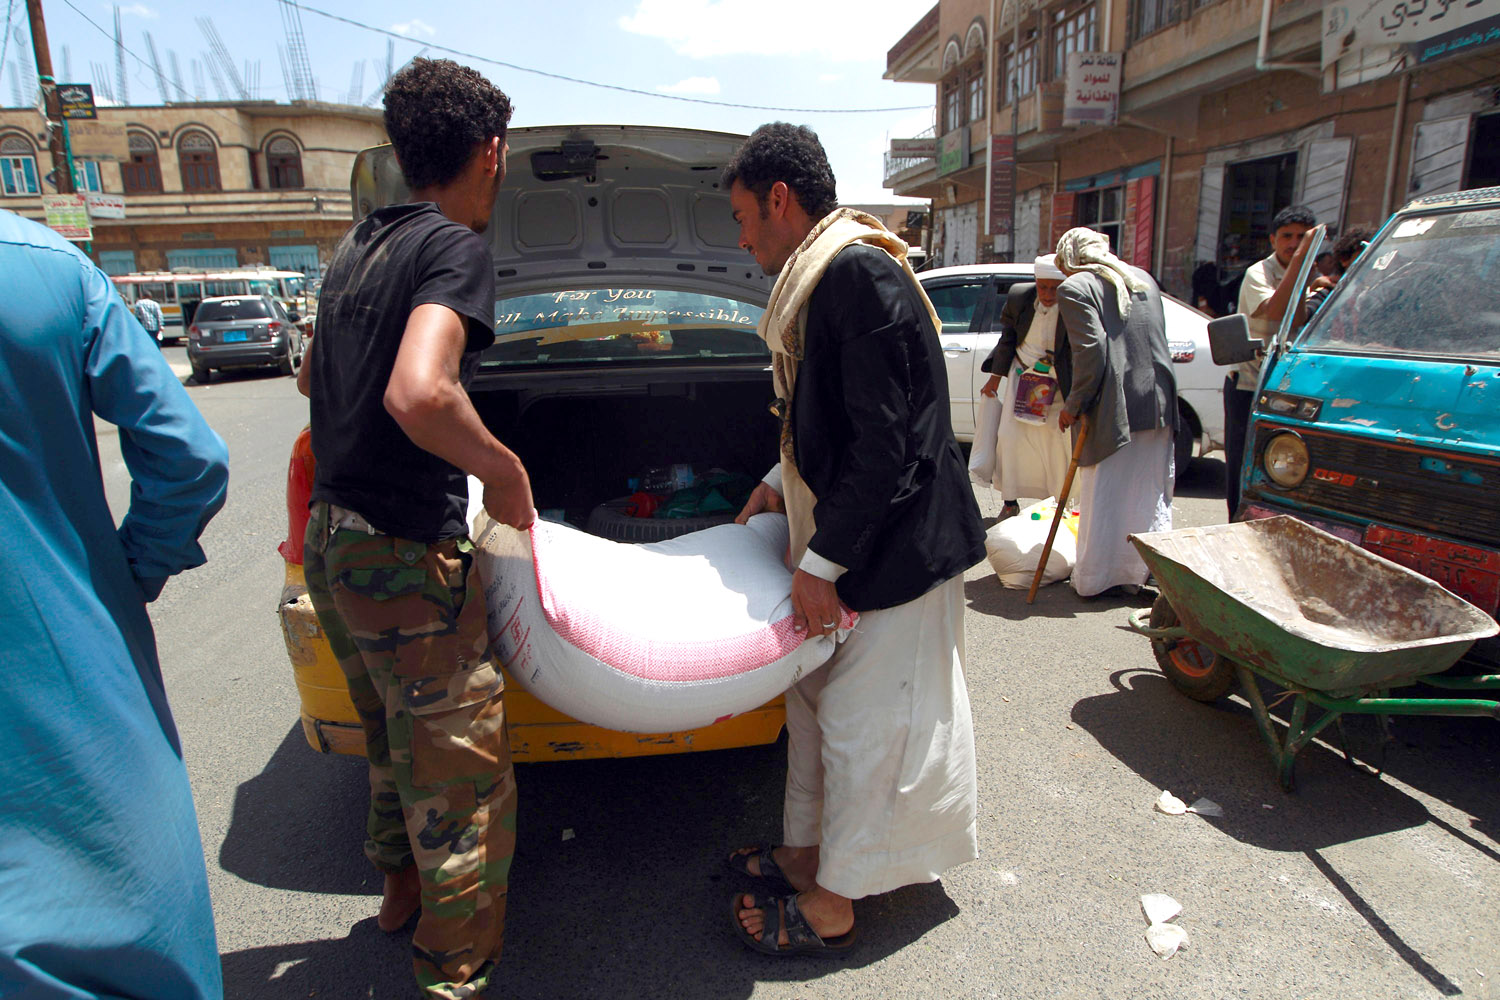 Yemeni men carry food aid provided by the World Food Programme in Sana'a. (sAFP)